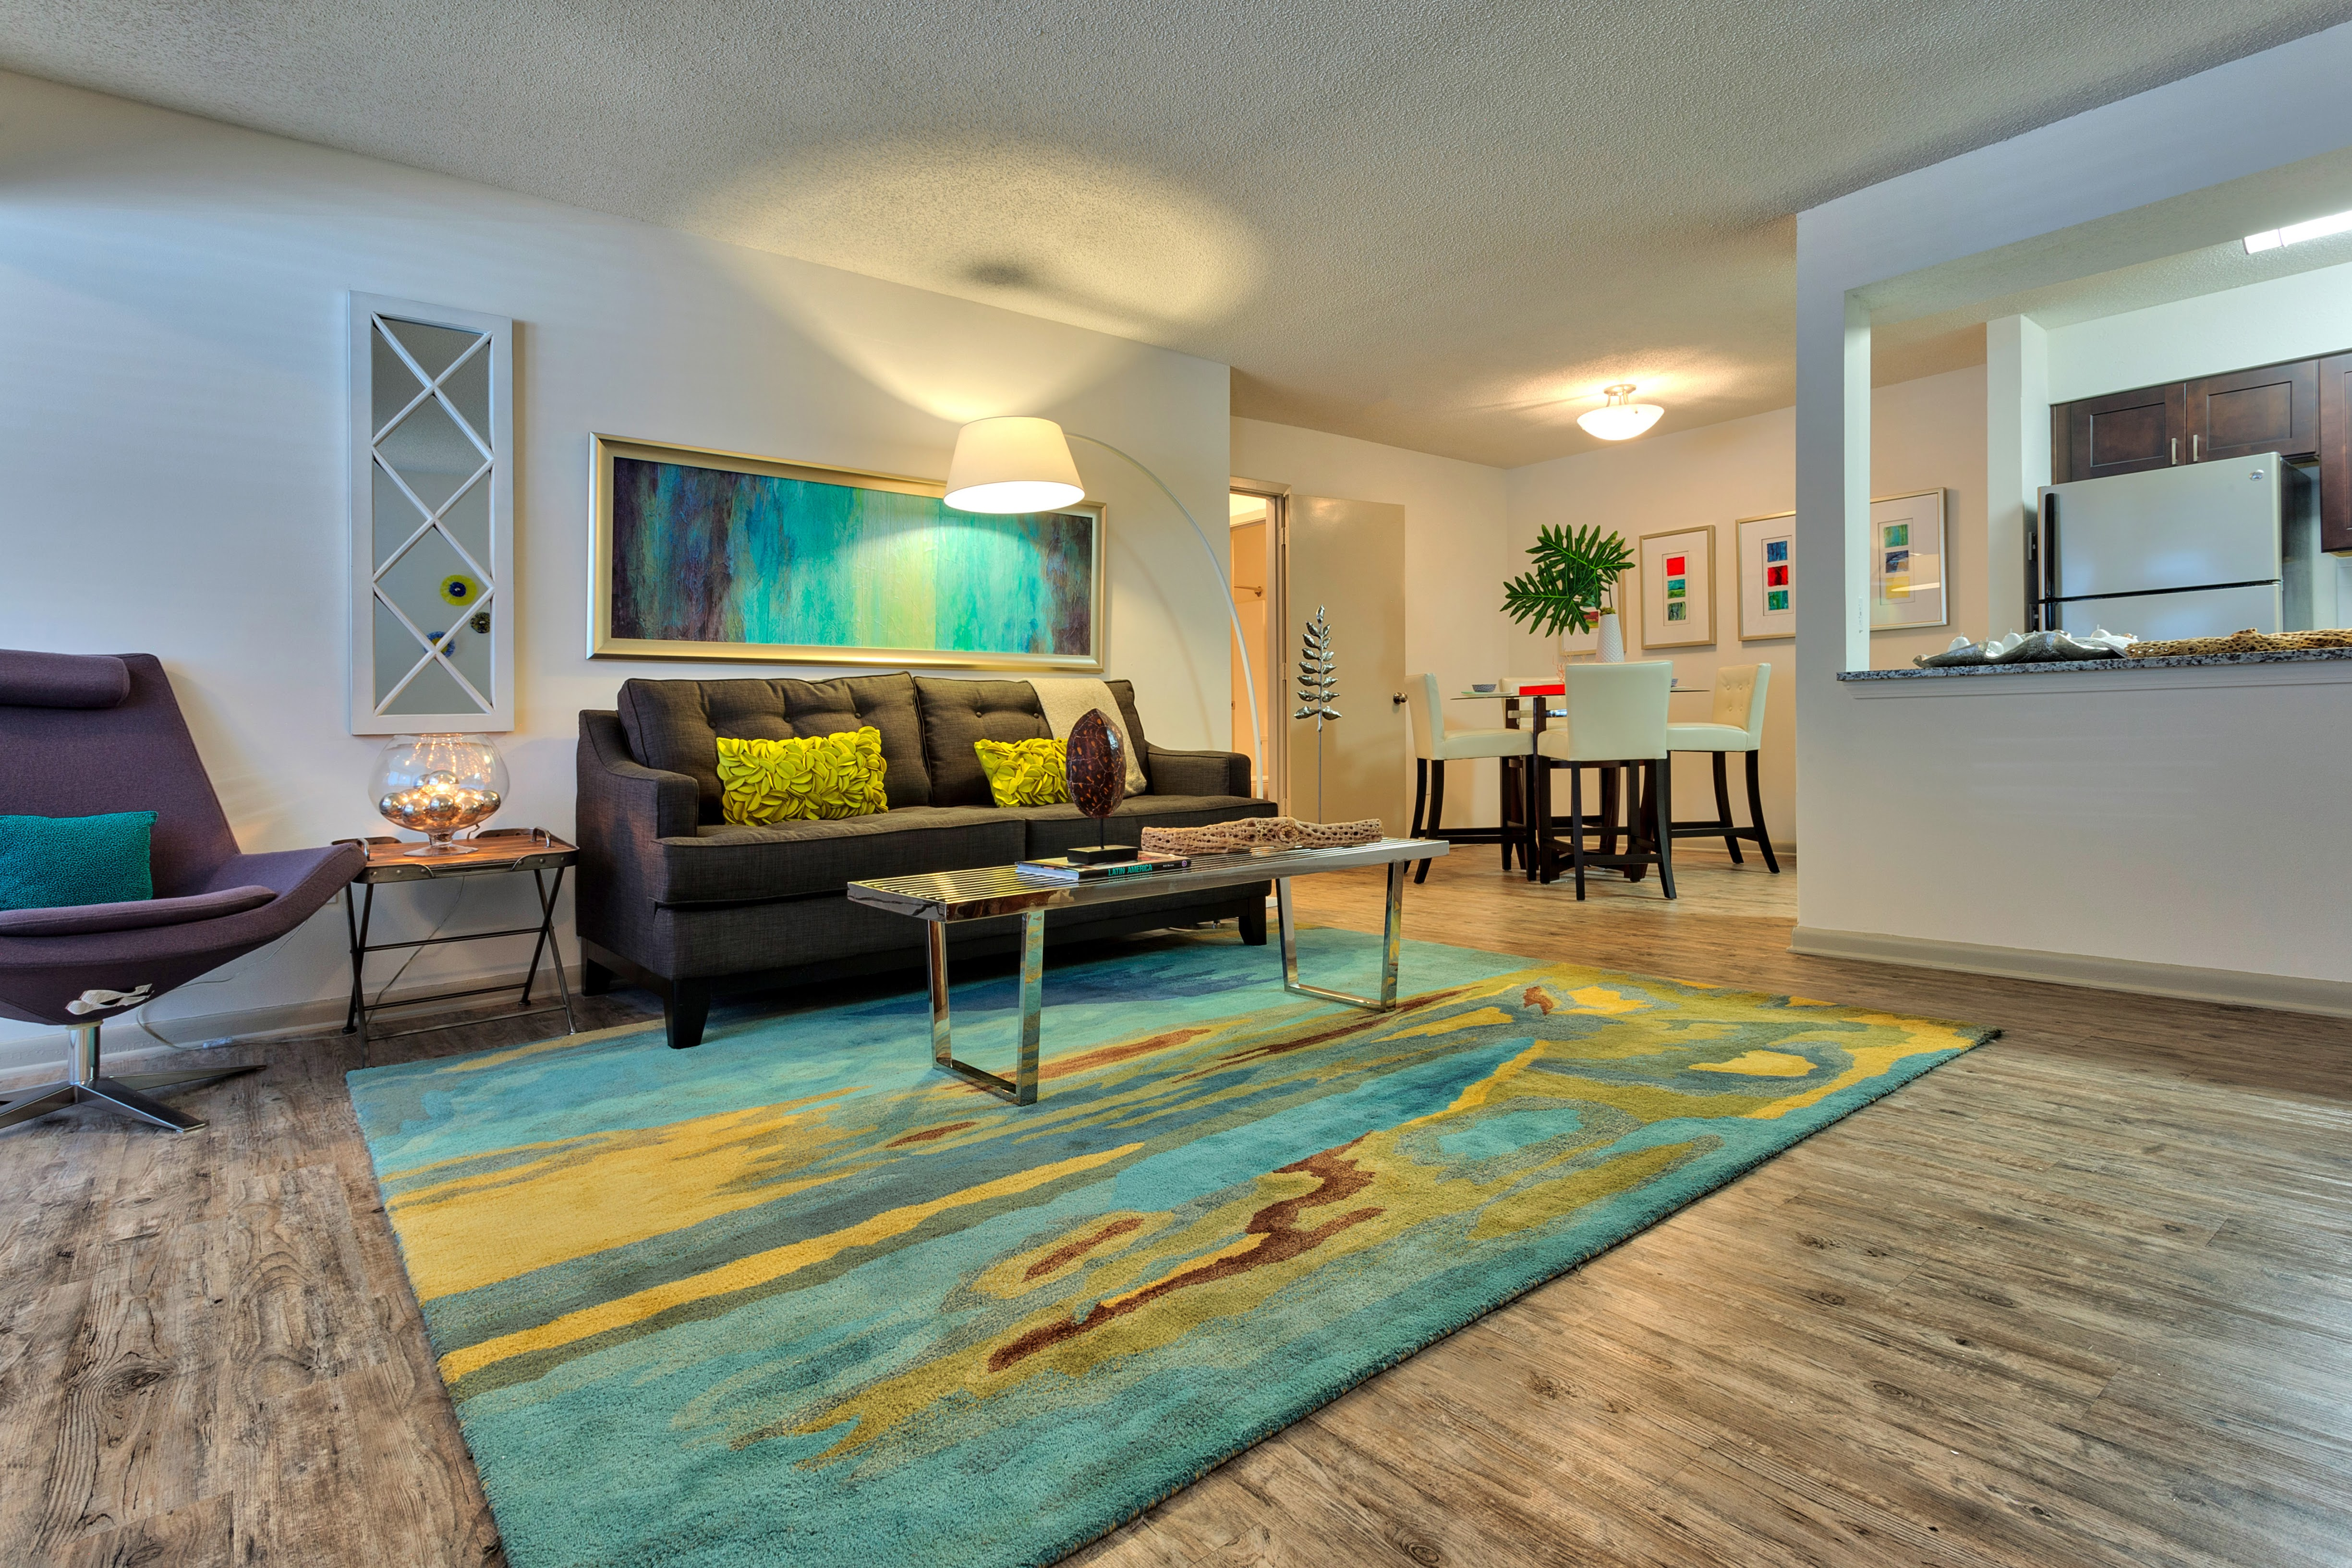 Cheap 2 Bedroom Apartments In Philadelphia apartments with utilities  included in atlanta fine 1. 14    Cheap 2 Bedroom Apartments In Philadelphia     The 10